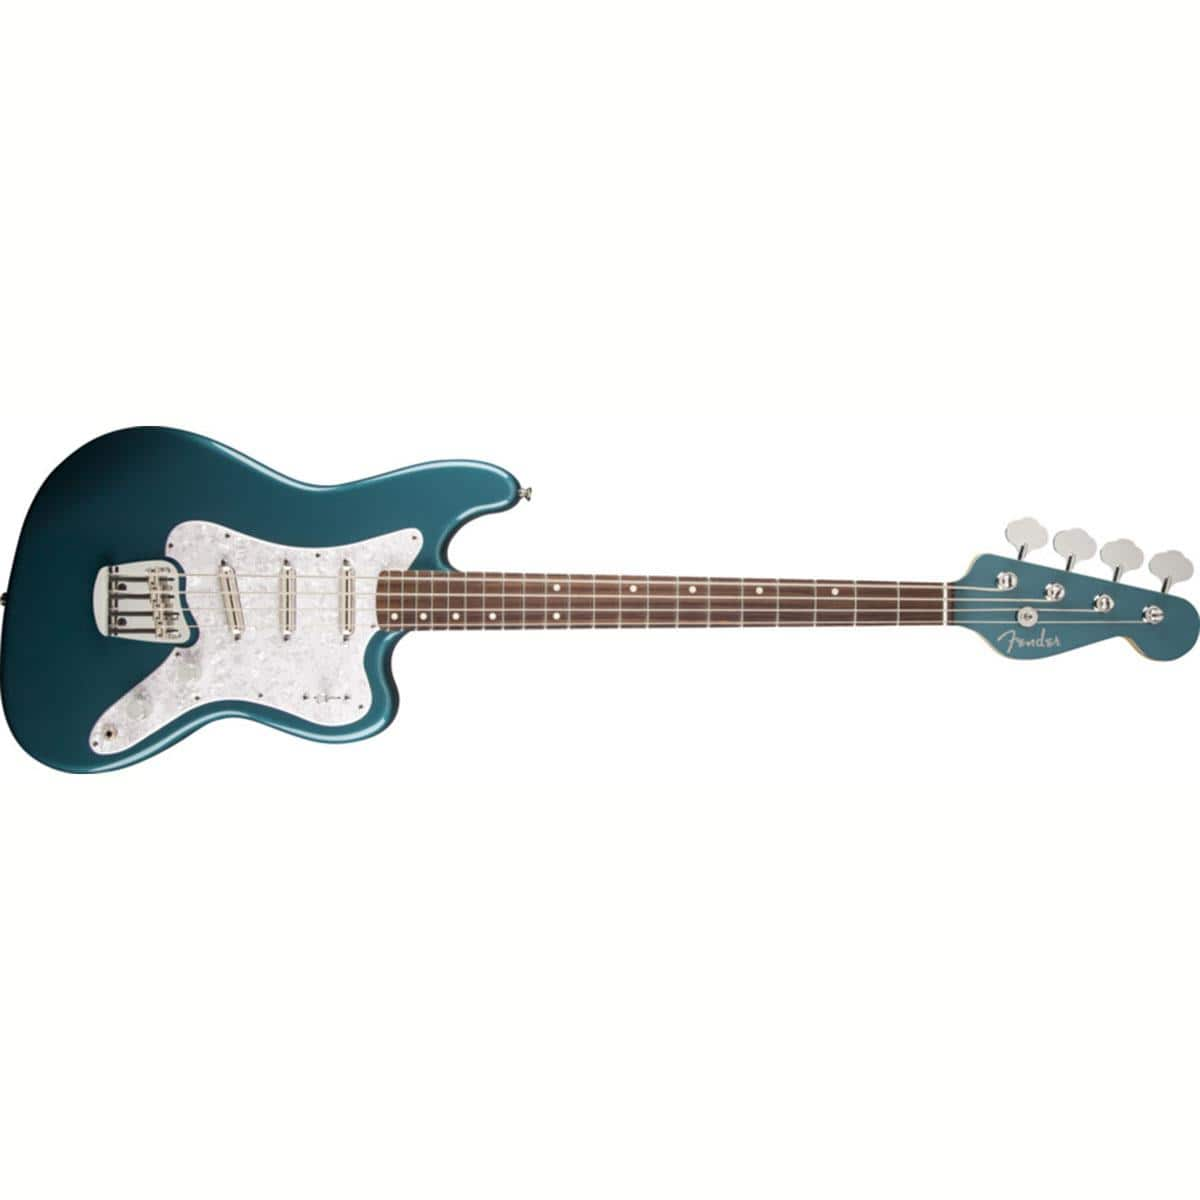 Fender Classic Player Rascal Bass Guitar $460 + free shipping